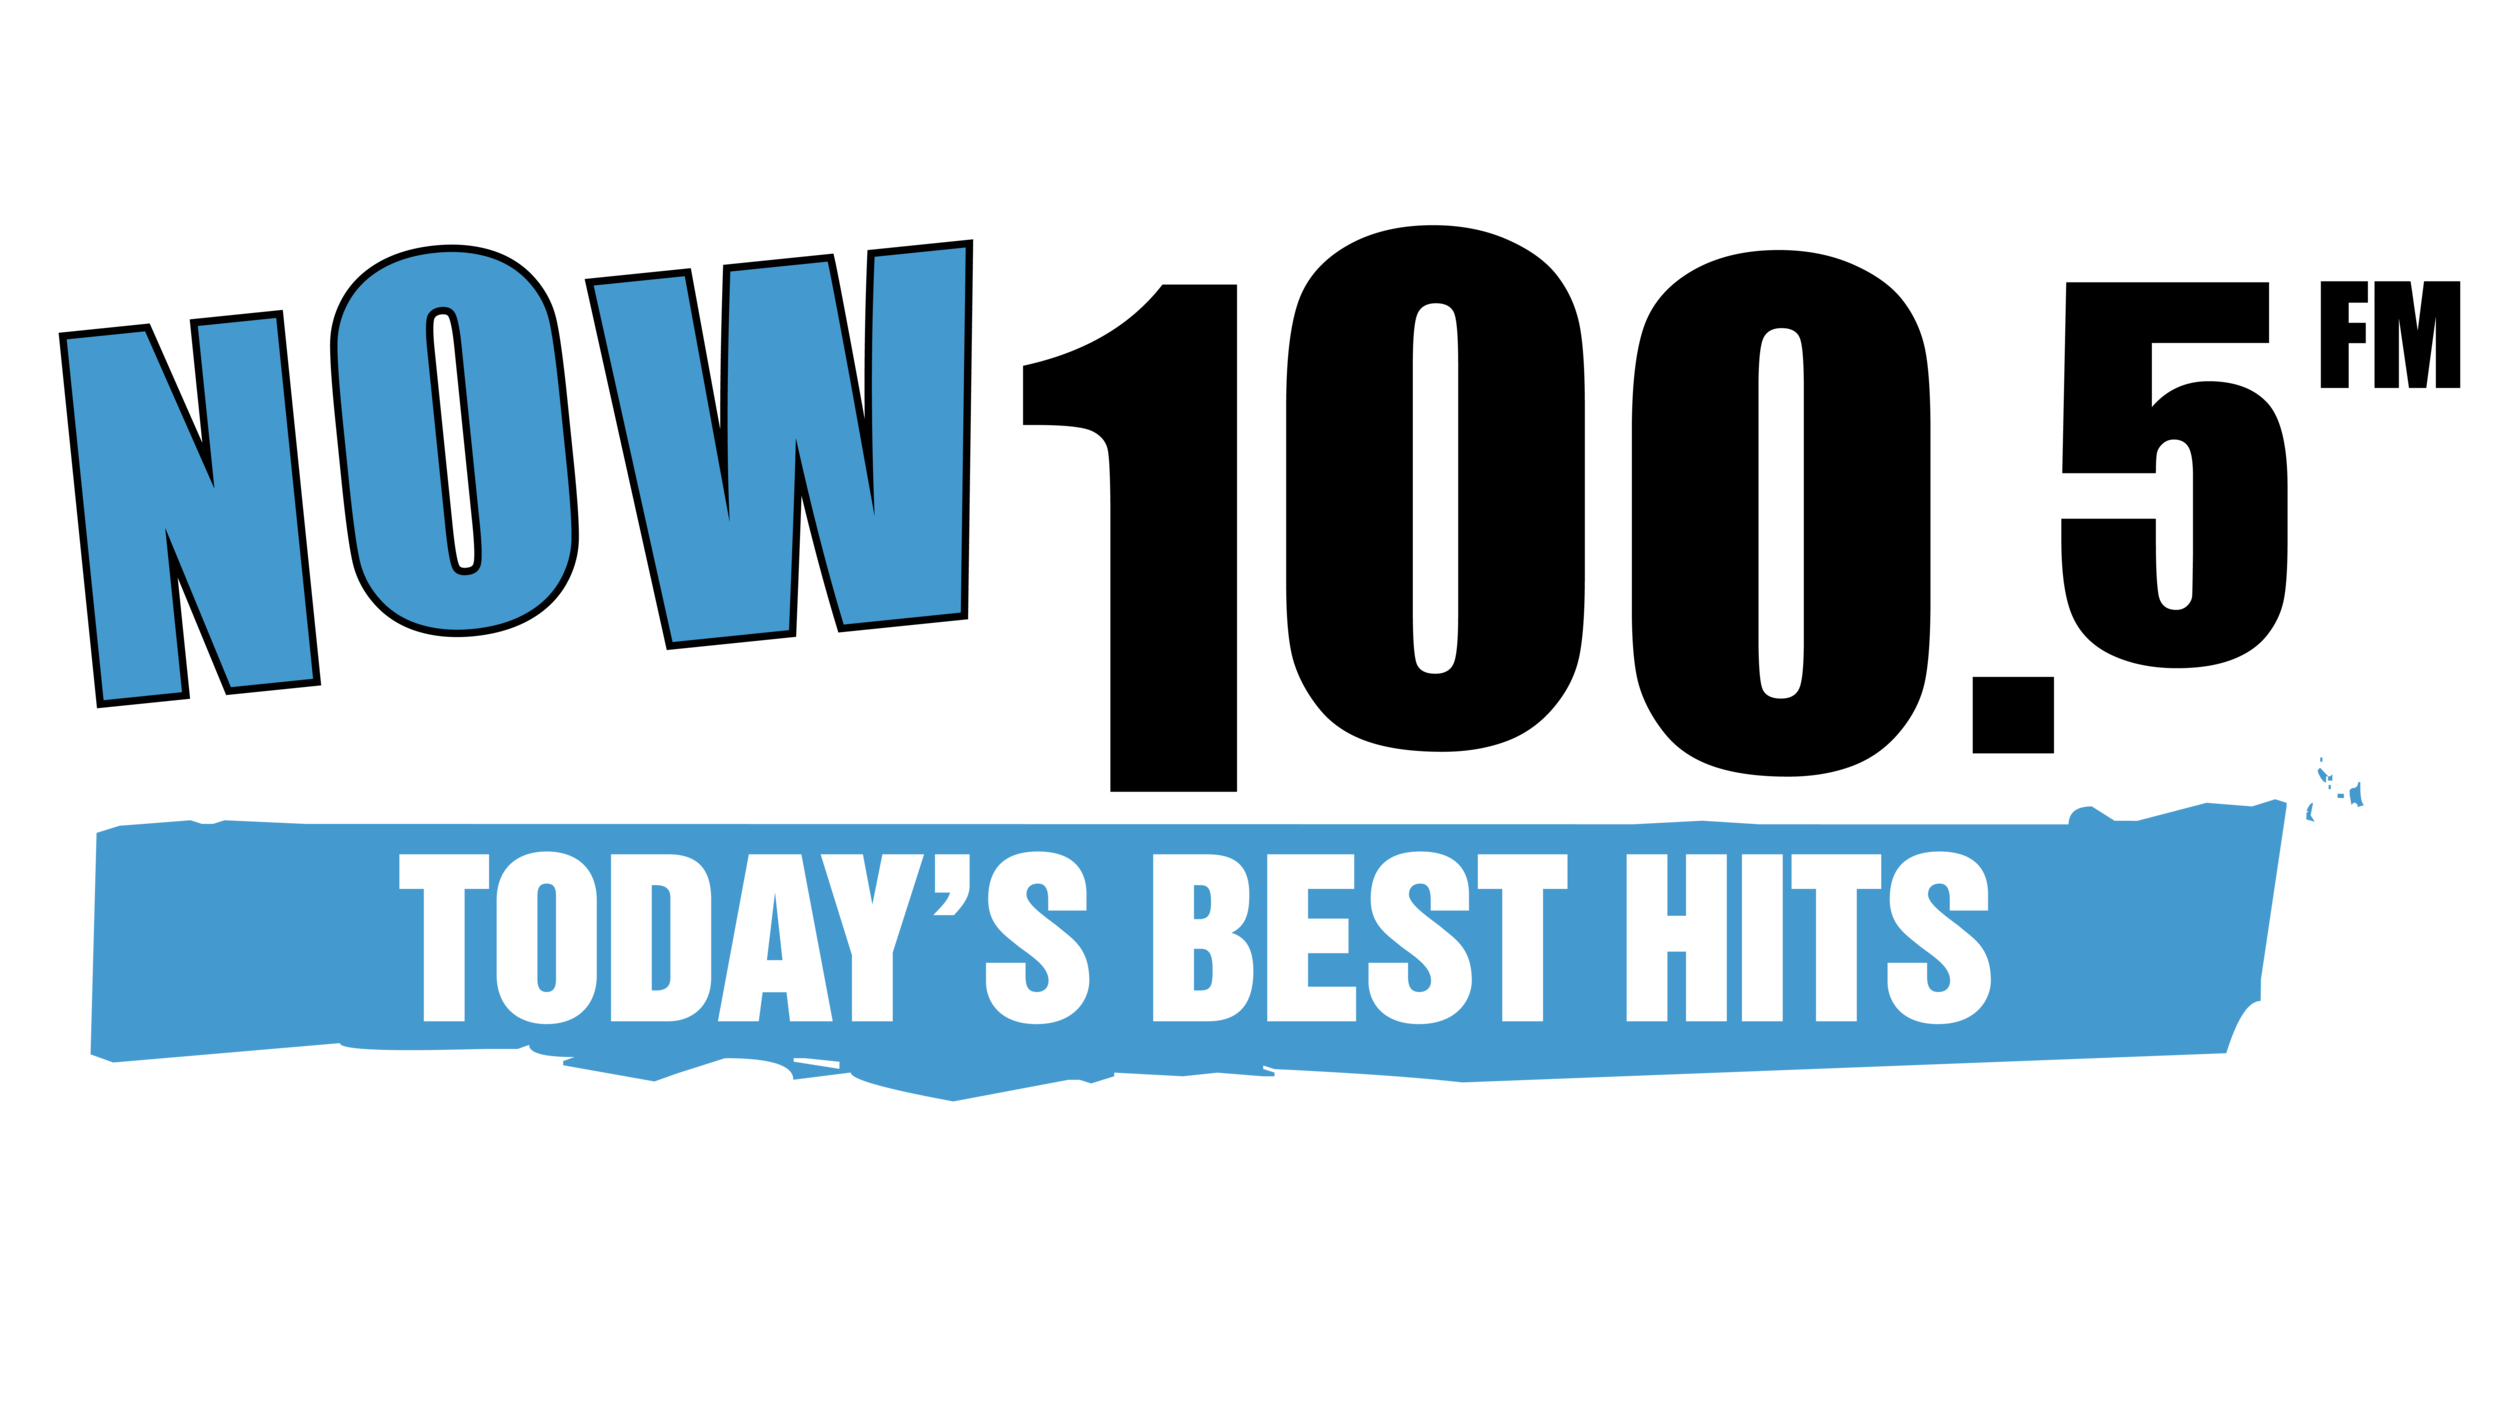 NOW-TODAYS BEST HITS-BLACK 100.5-01.png